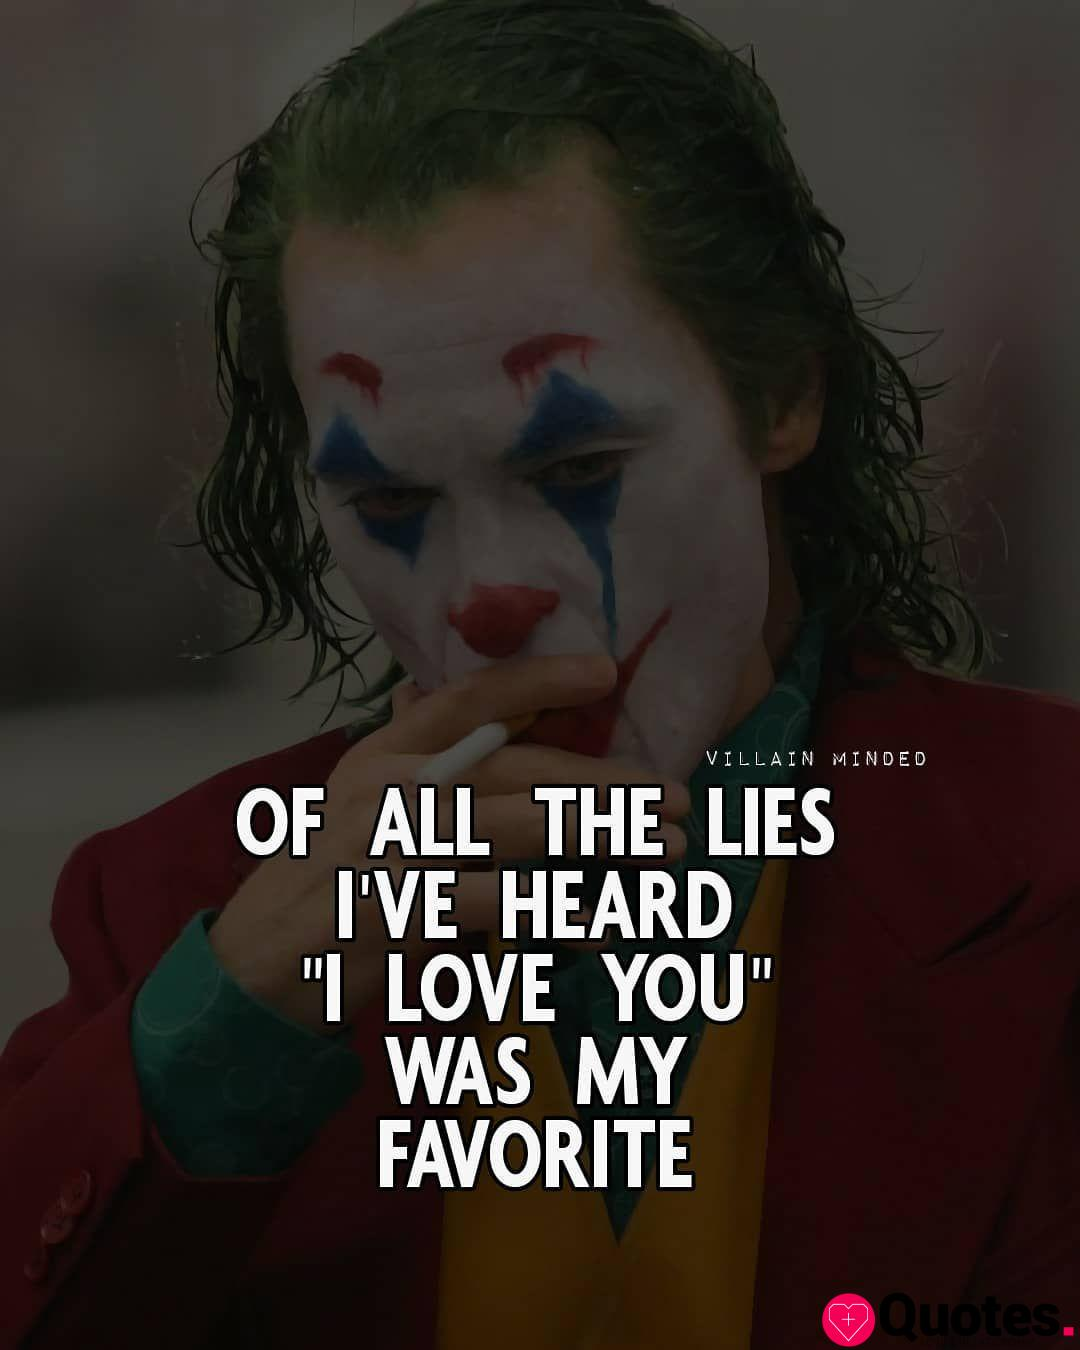 Love Joker Quotes : joker, quotes, Joker, Quotes, Motivation, Empire, Daily, Leading, Relationship, Quotes,, Sayings, Collections